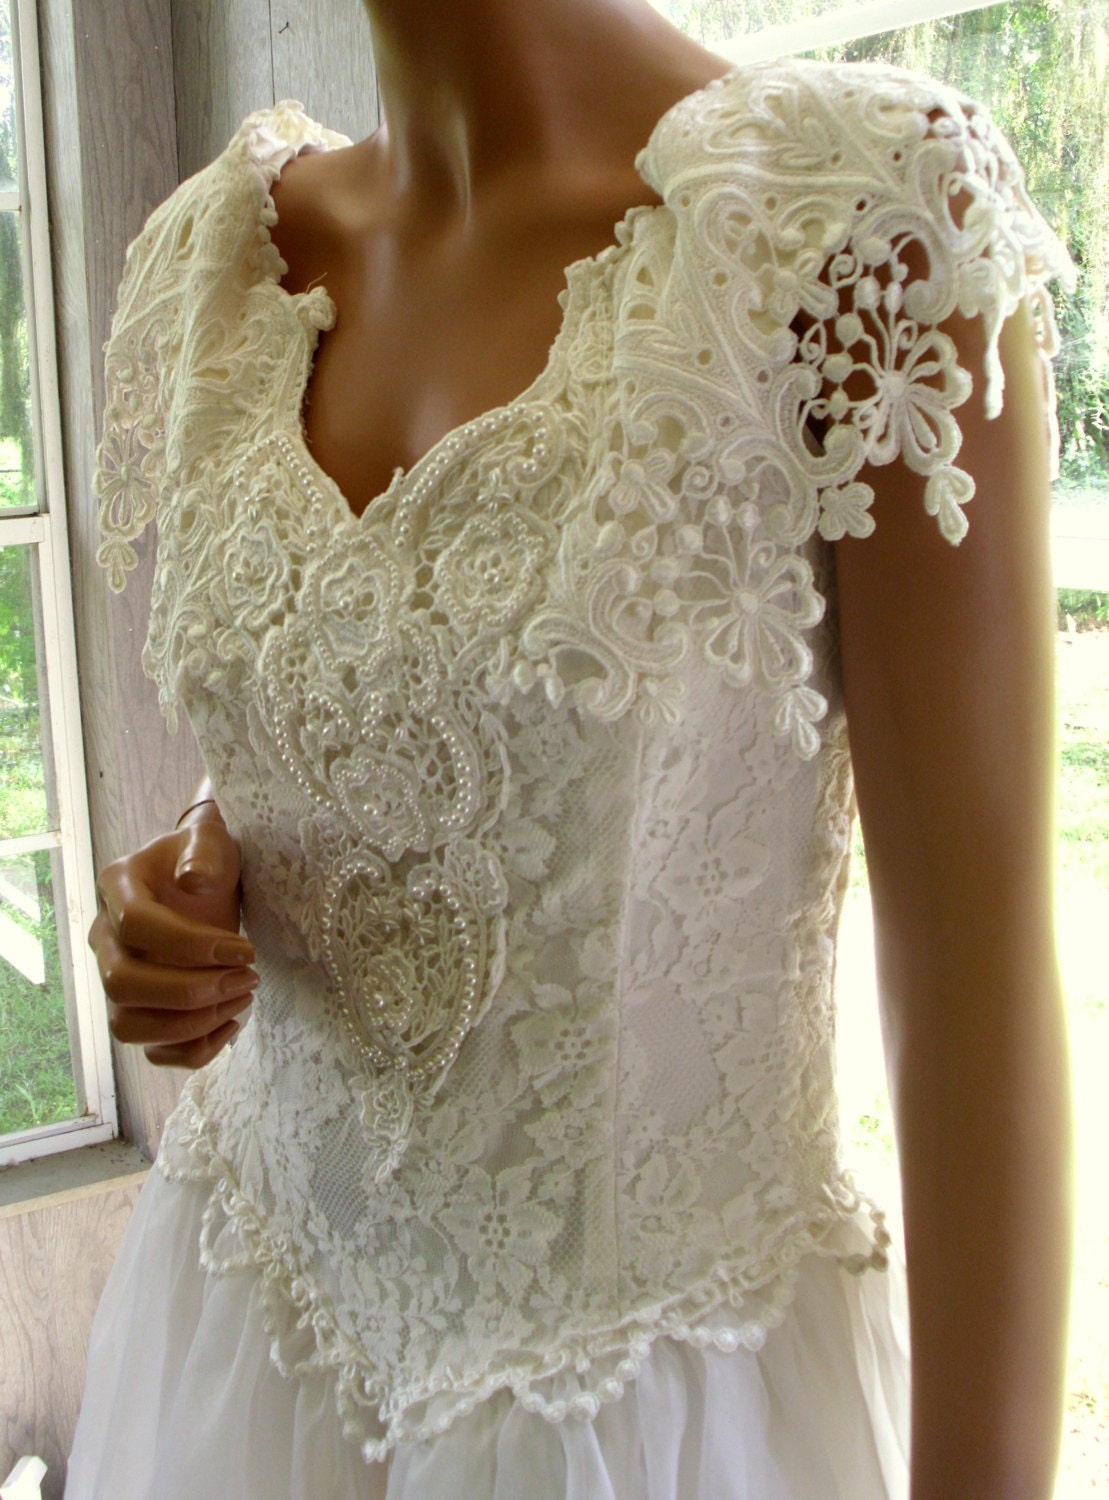 Vintage gunne sax jessica mcclintock bridal gown wedding dress for Jessica mcclintock wedding dresses outlet